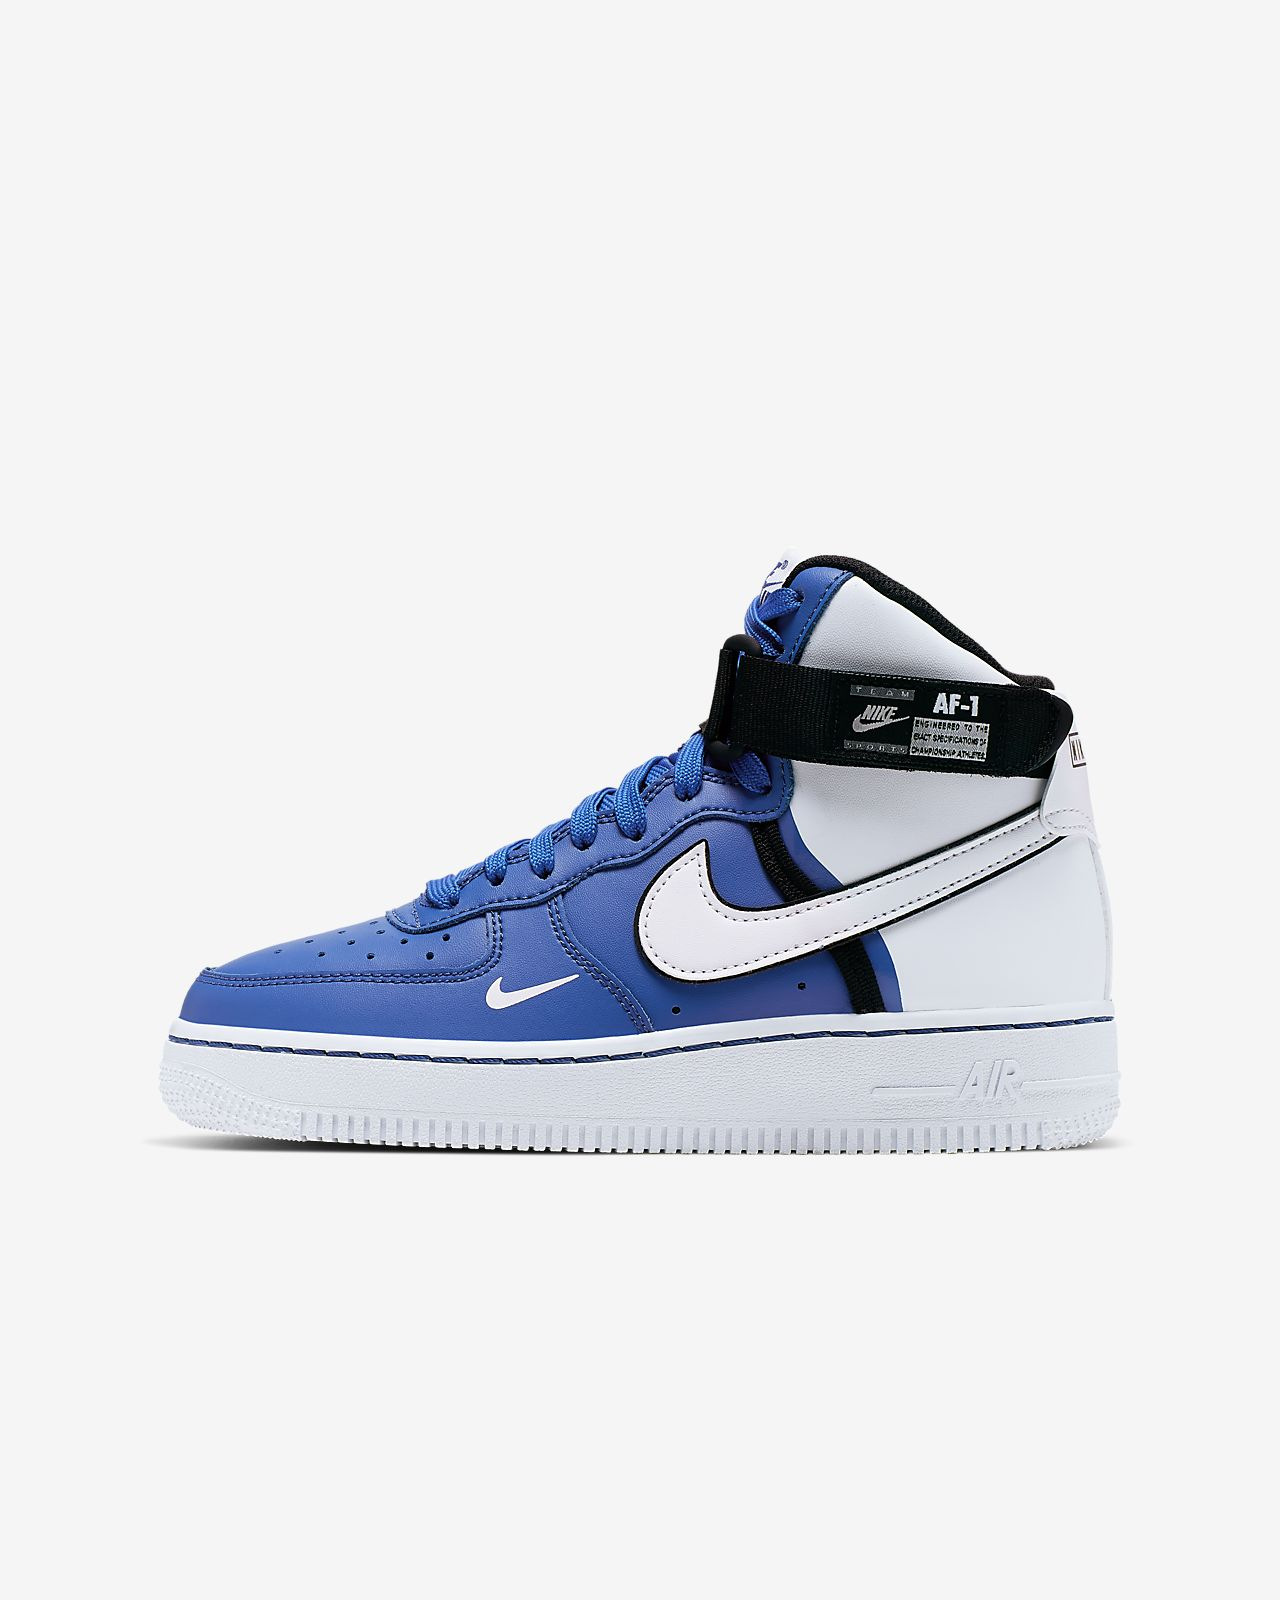 Nike Air Force 1 High LV8 2 Big Kids' Shoe